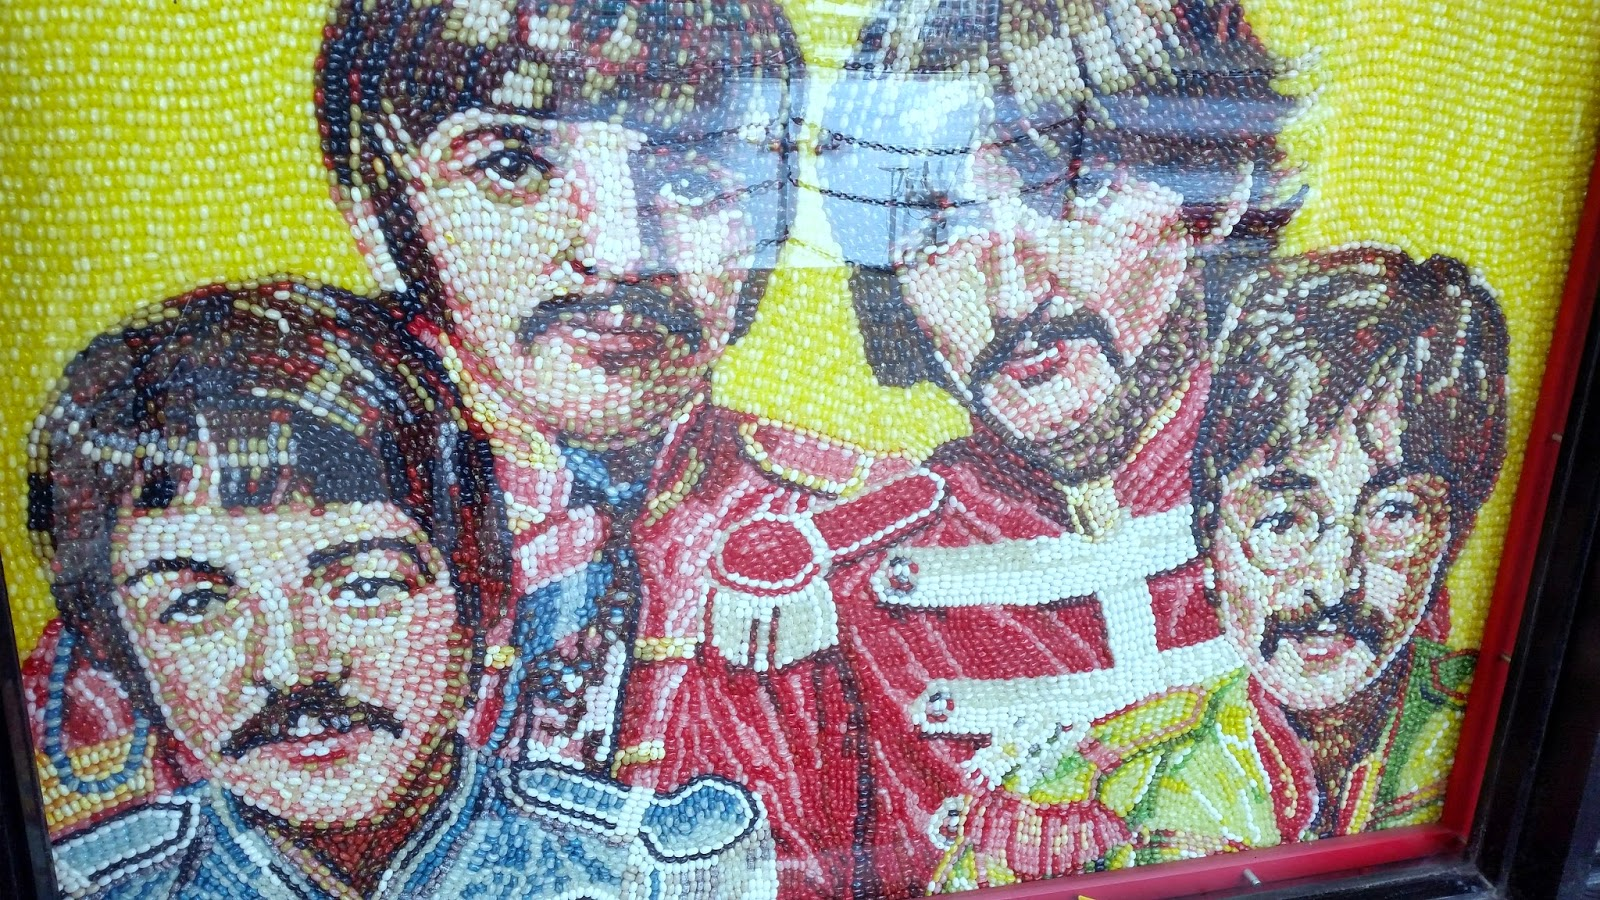 THE BEATLES MADE FROM JELLY BEANS